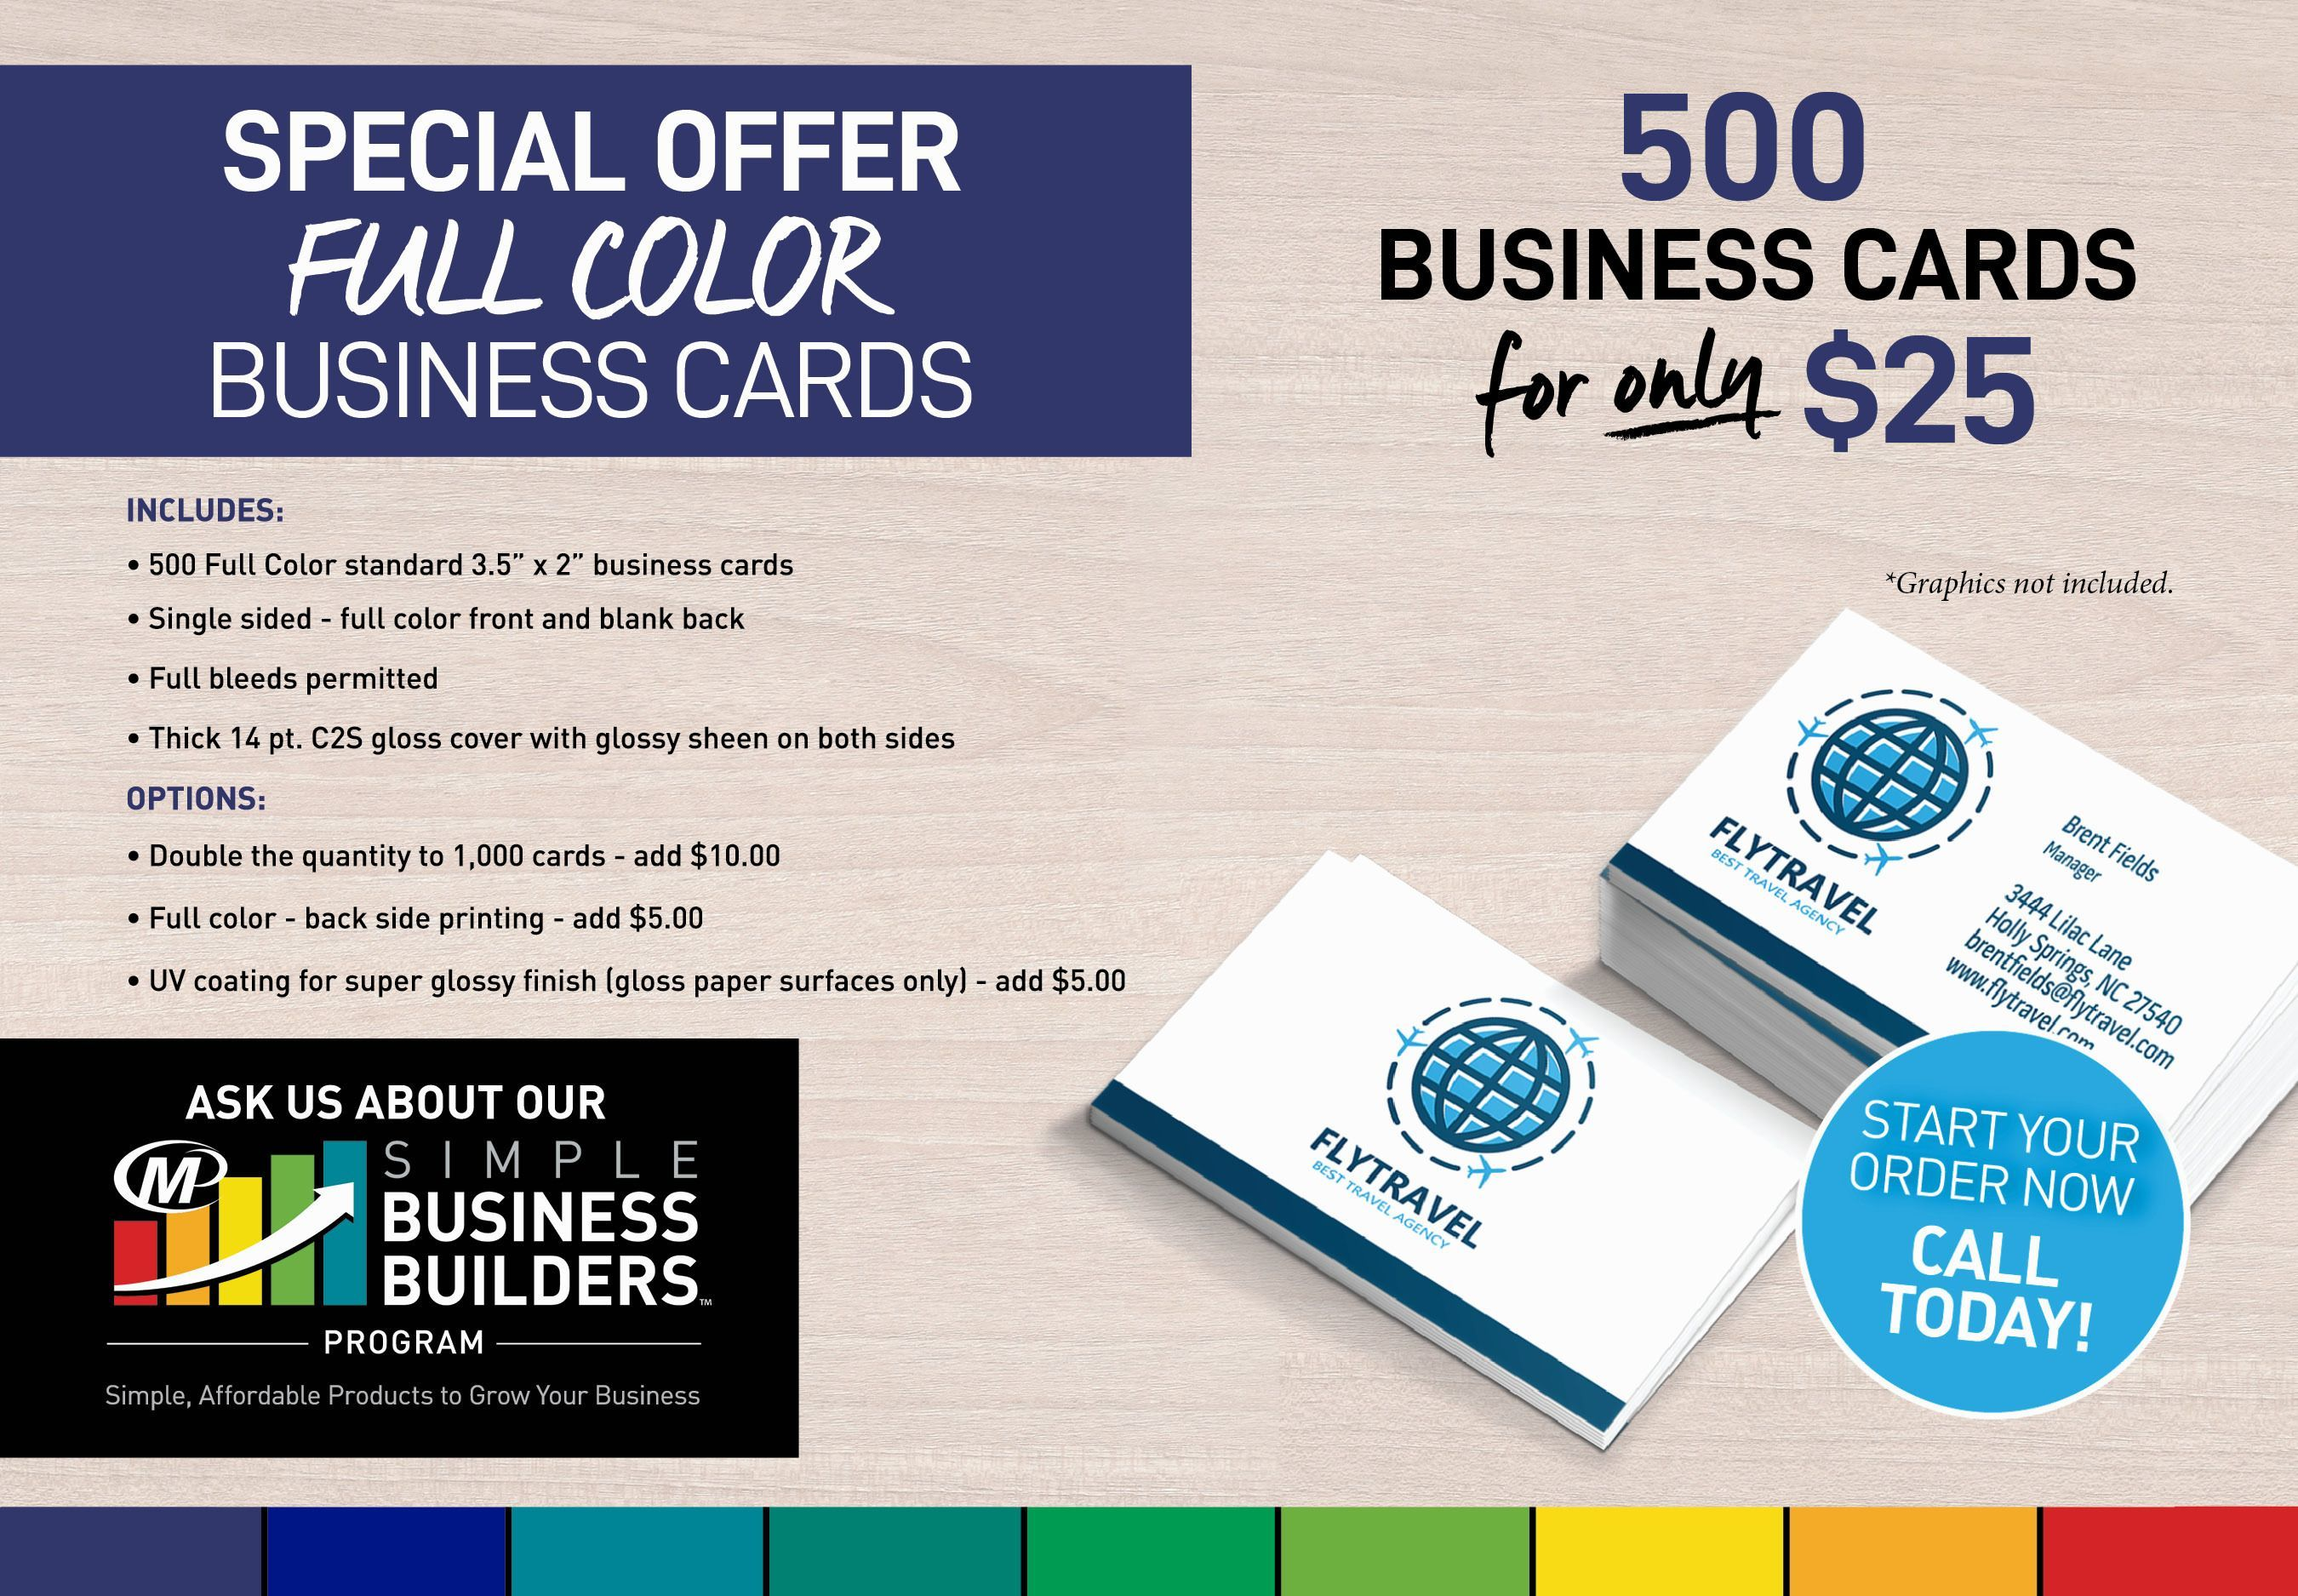 Special Offer on Business Cards